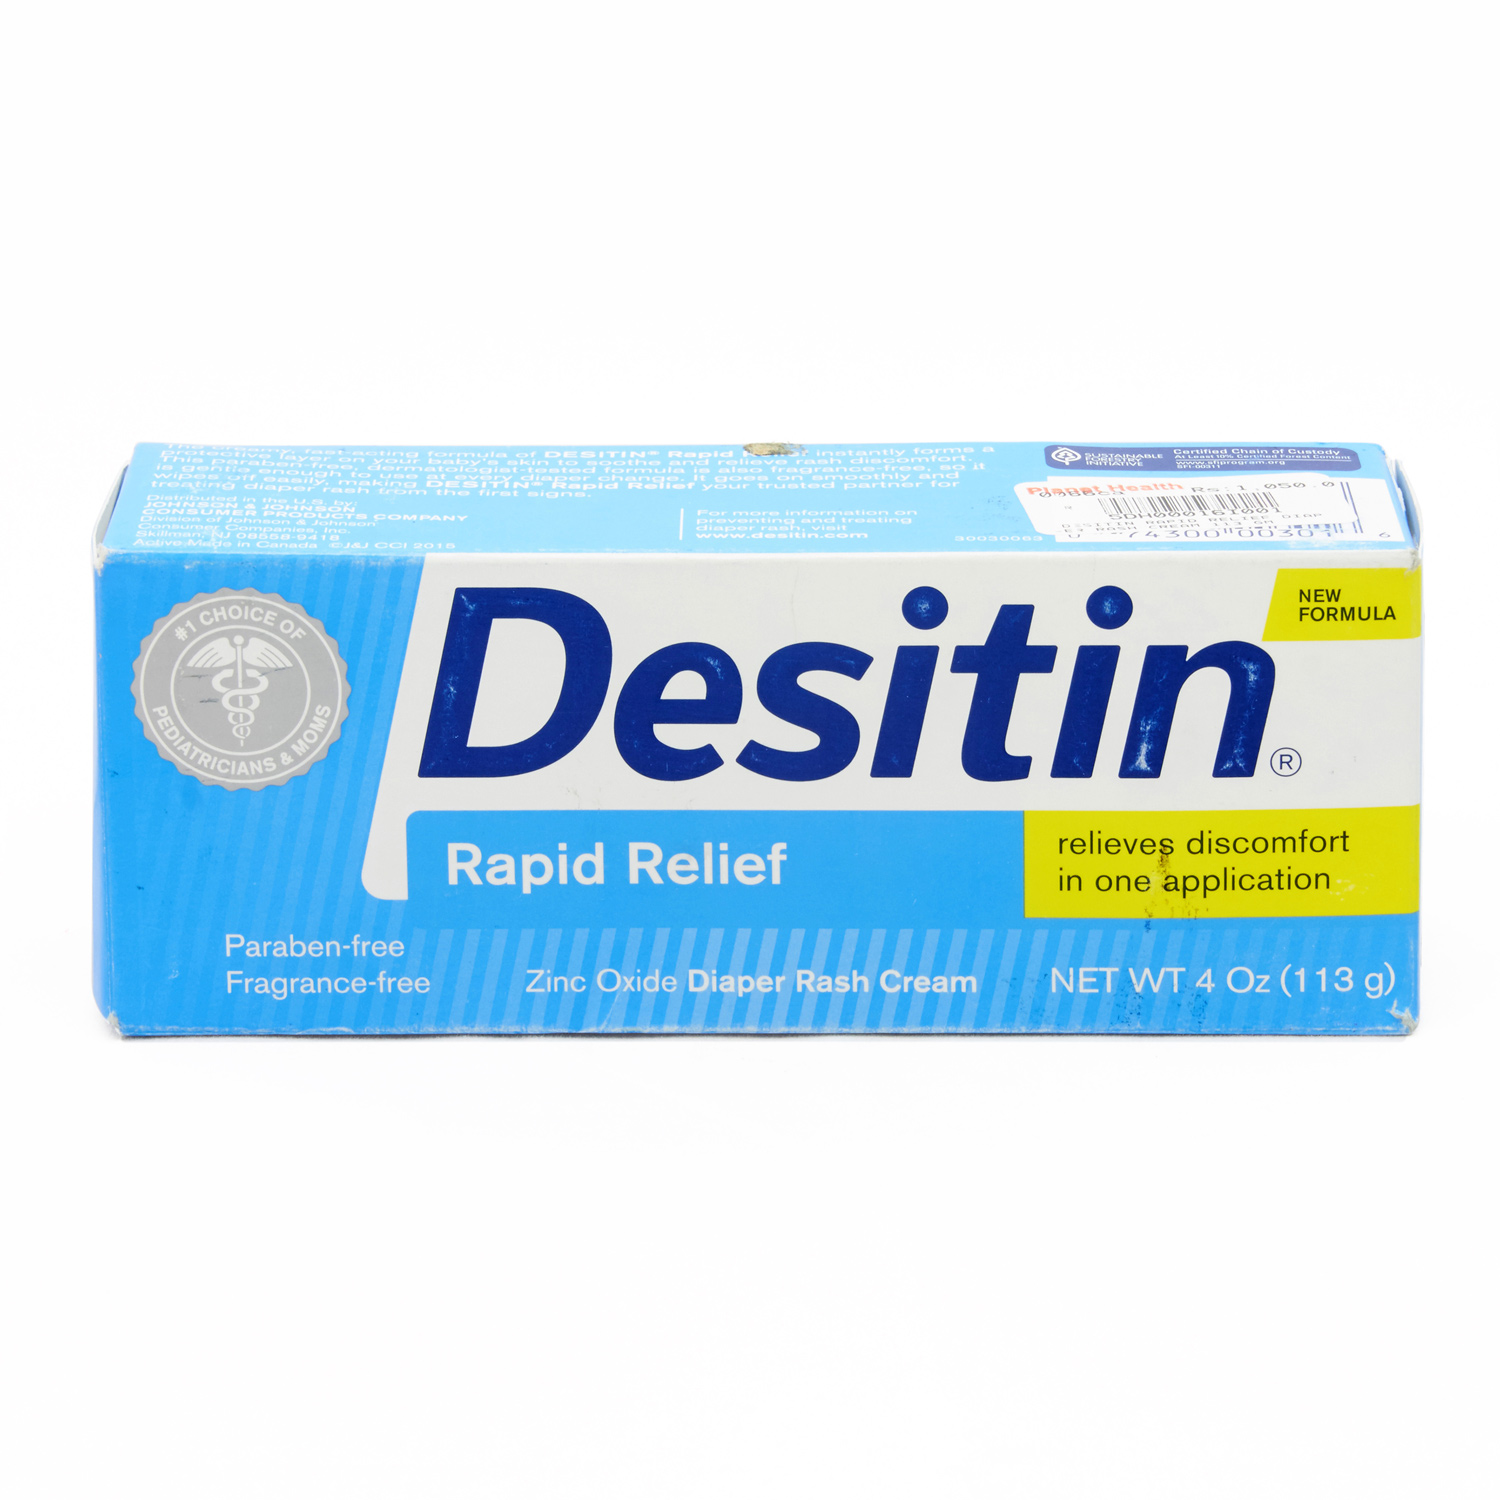 Desitin Rapid Relief Diaper Rash Cream - 113 gm